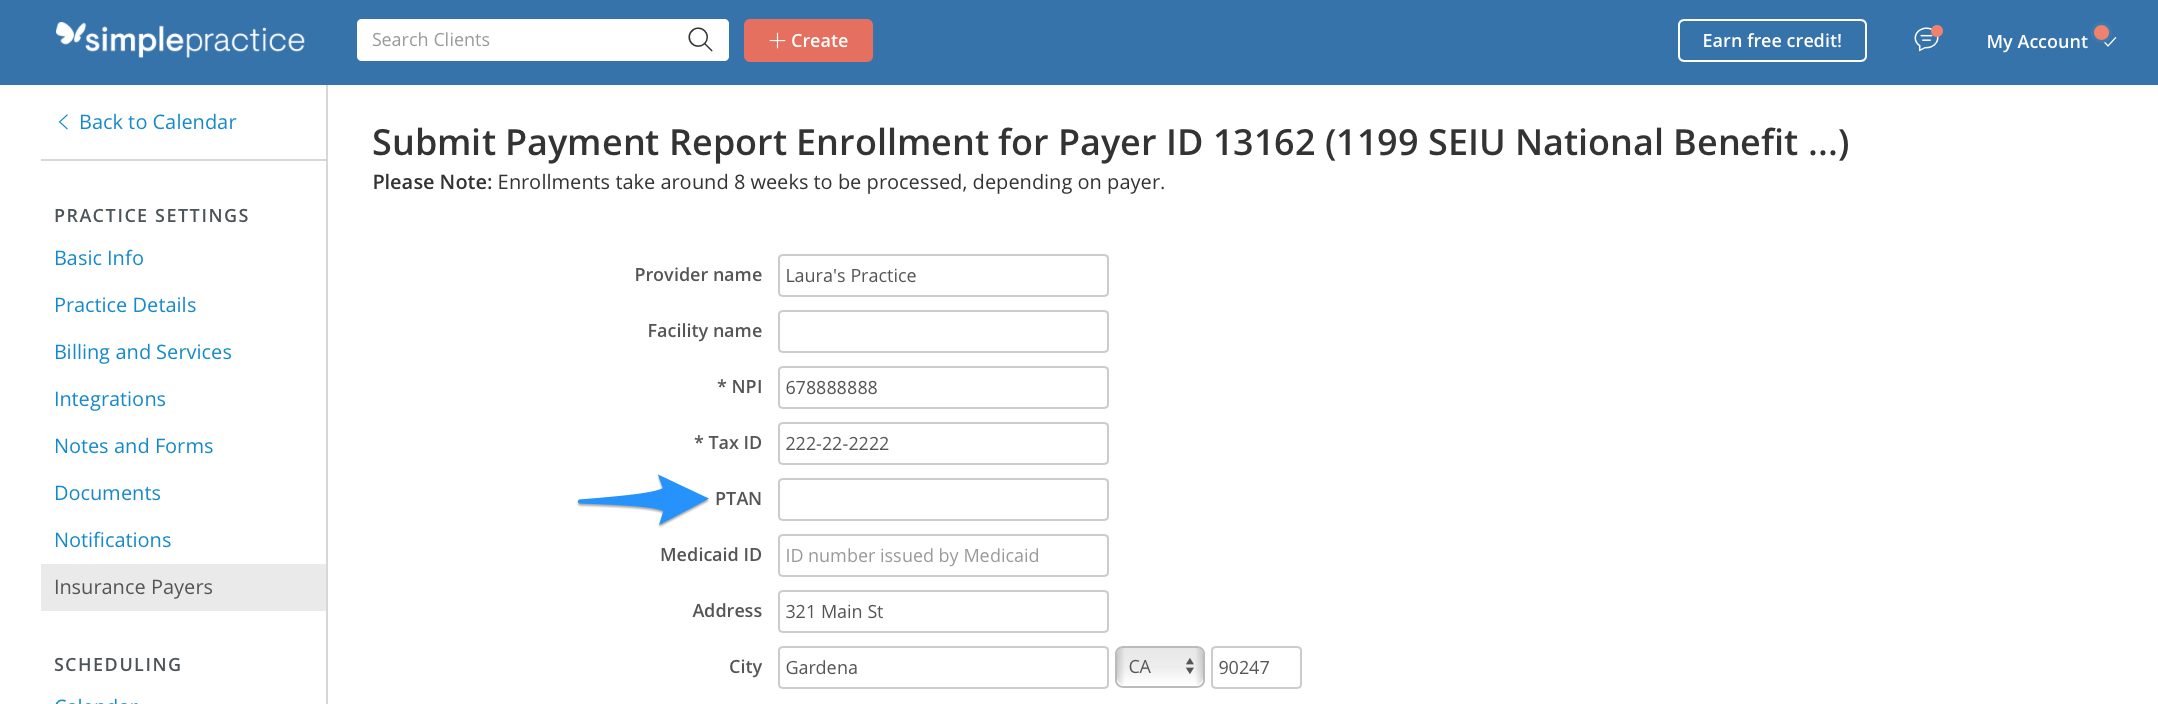 Leave PTAN field blank for anything other than Medicare enrollment in SimplePractice